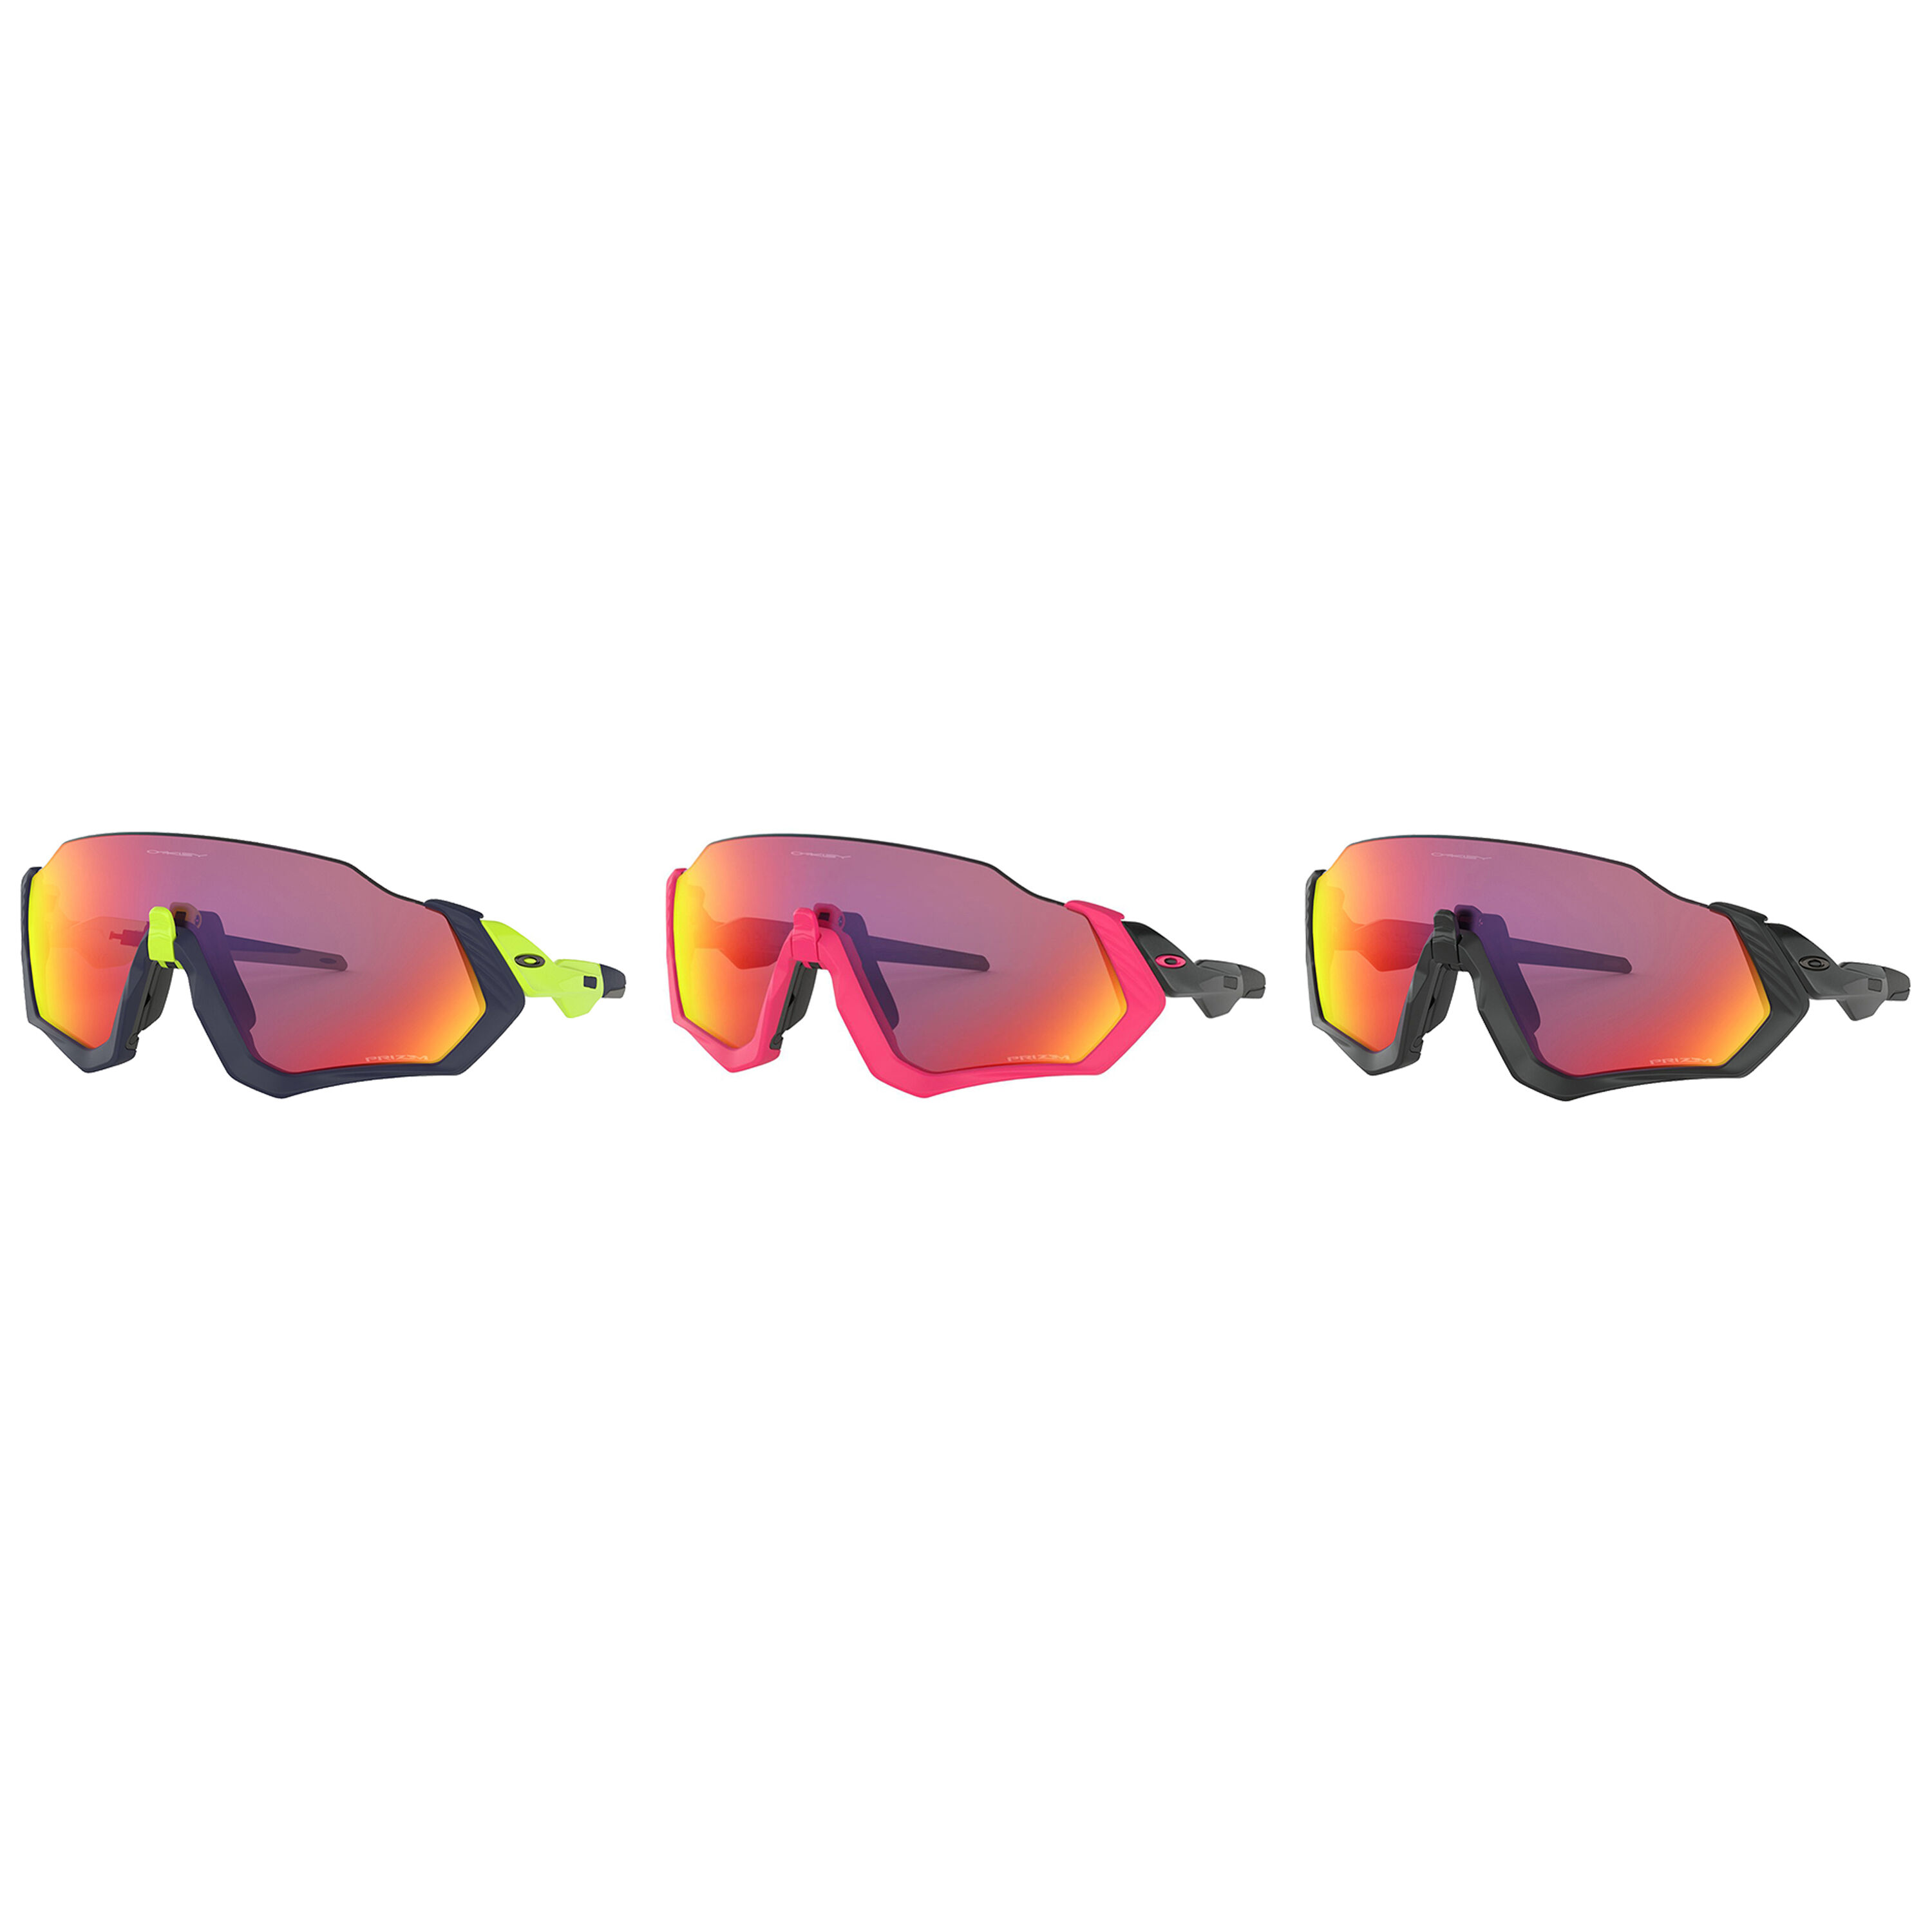 feea0bc586558 Gafas Oakley Flight Jacket Prizm Road LordGun tienda de bicicletas ...